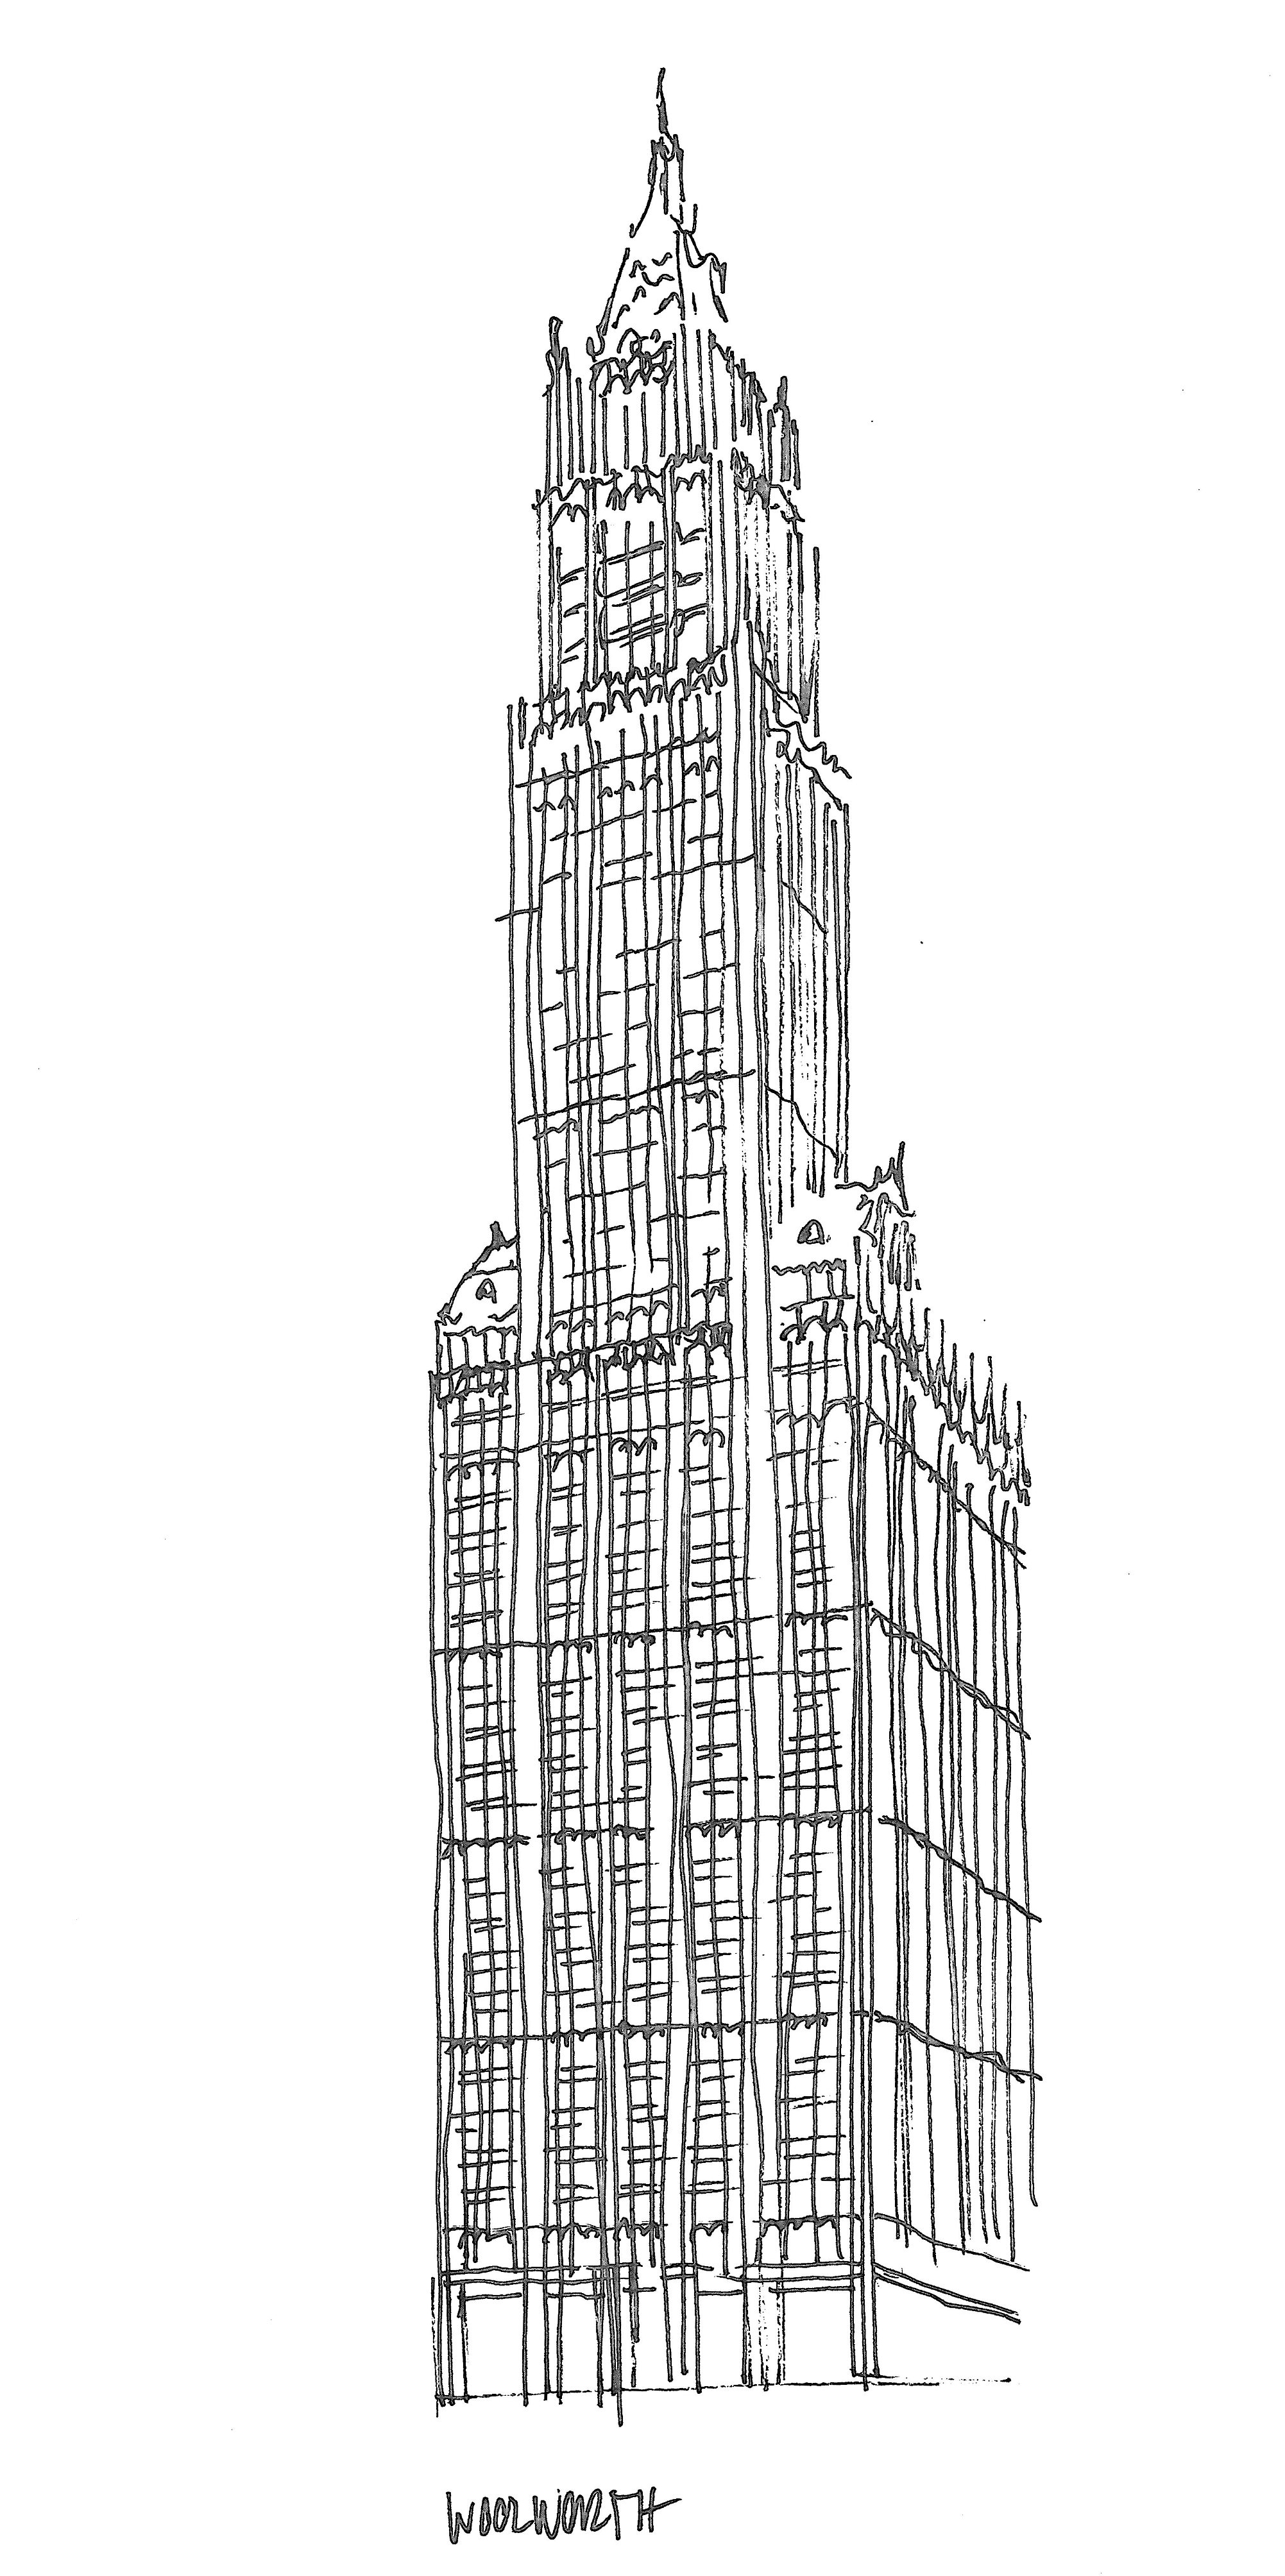 First Leiter & Woolworth Building [sketched by Heidi]